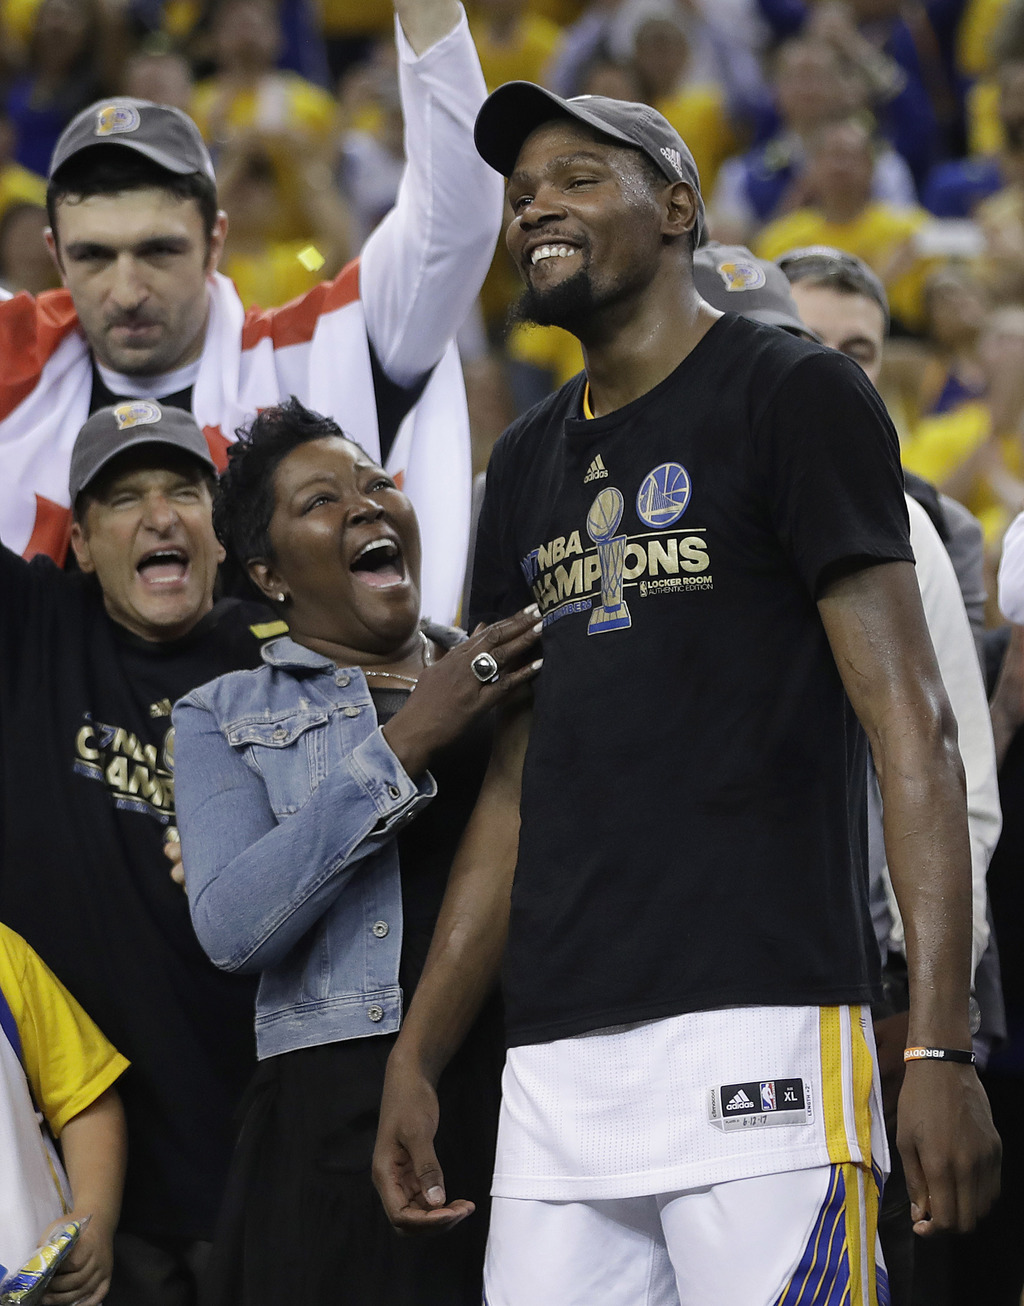 Kevin Durant, Stephen Curry lead Warriors to NBA title